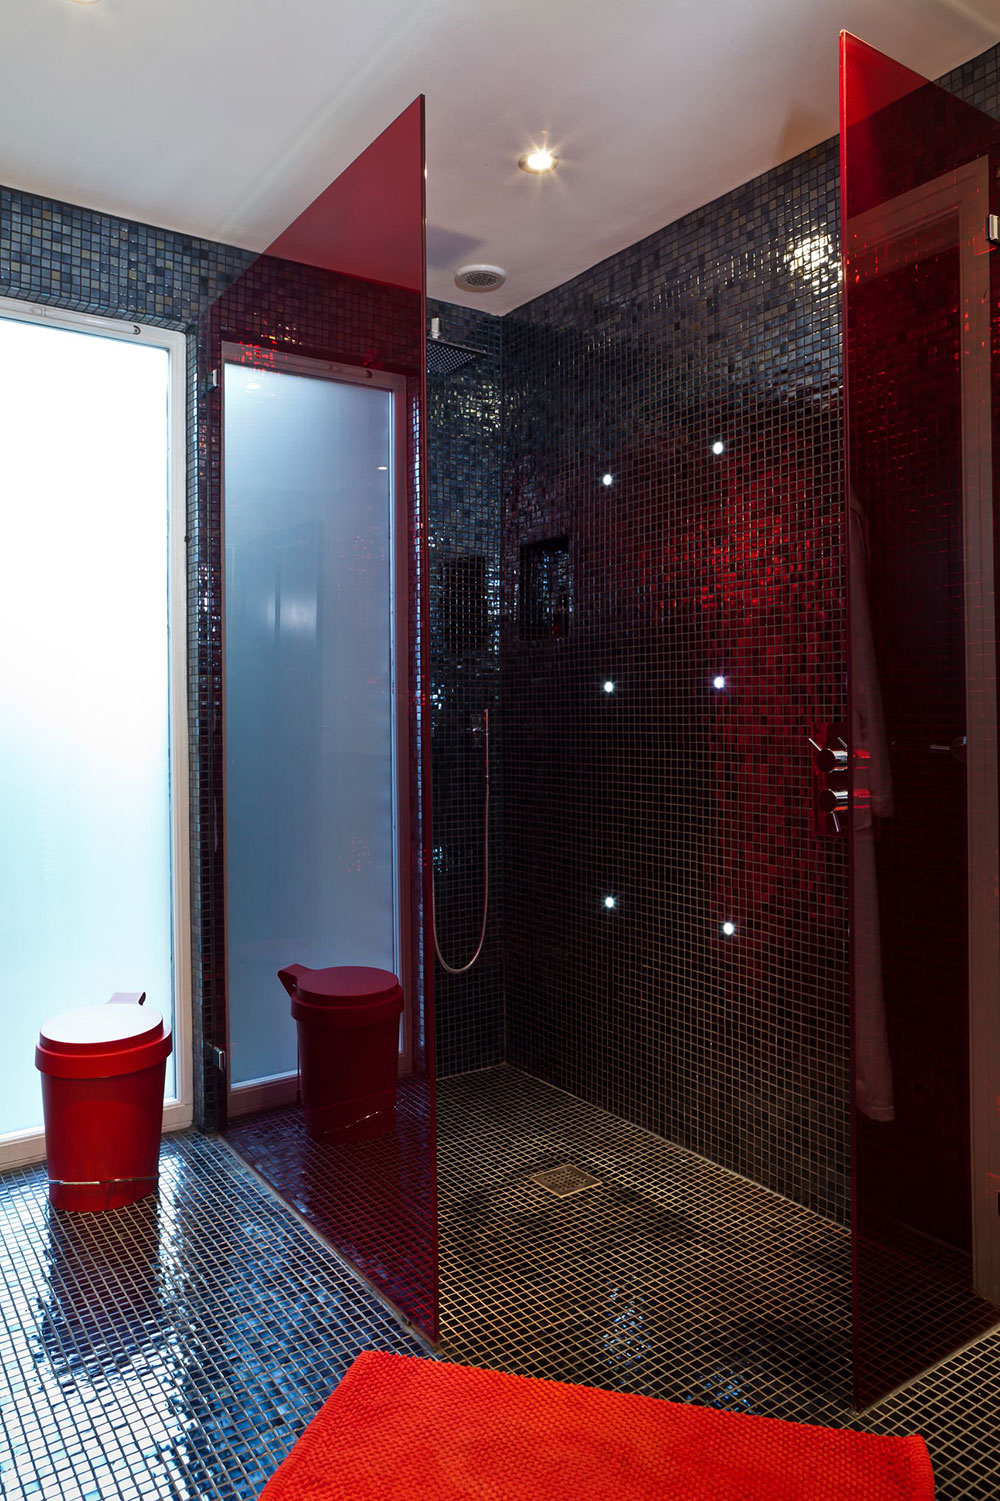 Wet Room Decor And Design Ideas2 Wet Room Decor And Design Ideas